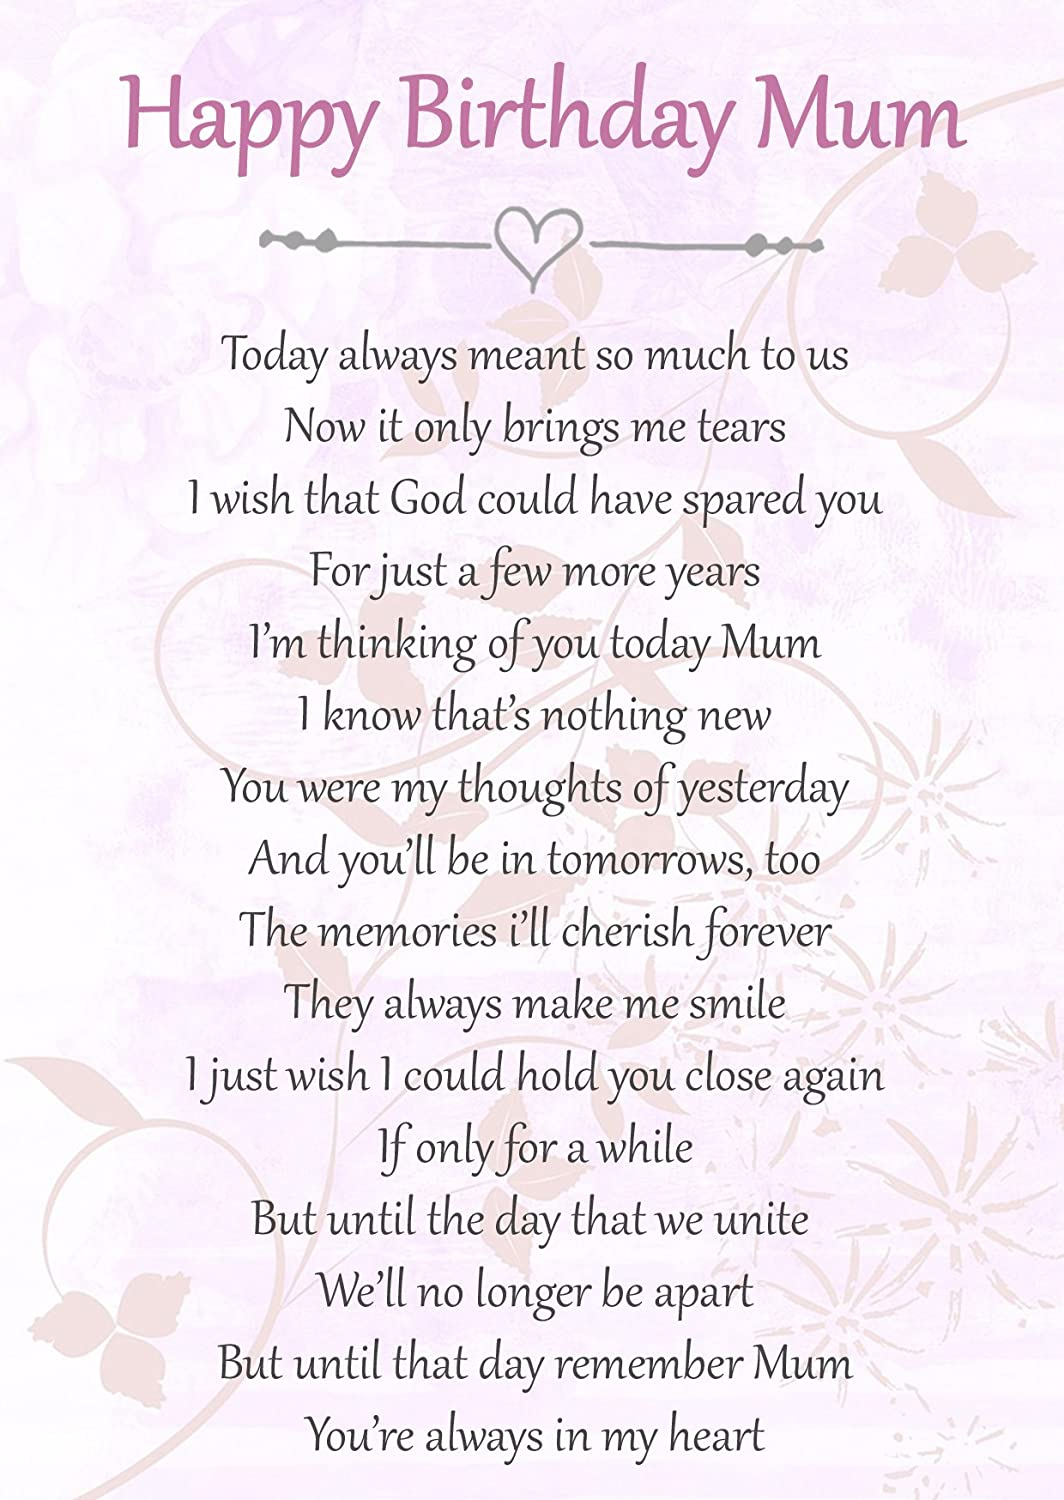 Happy Birthday Mum Memorial Graveside Poem Keepsake Card Includes Free Ground Stake F66 Amazoncouk Kitchen Home